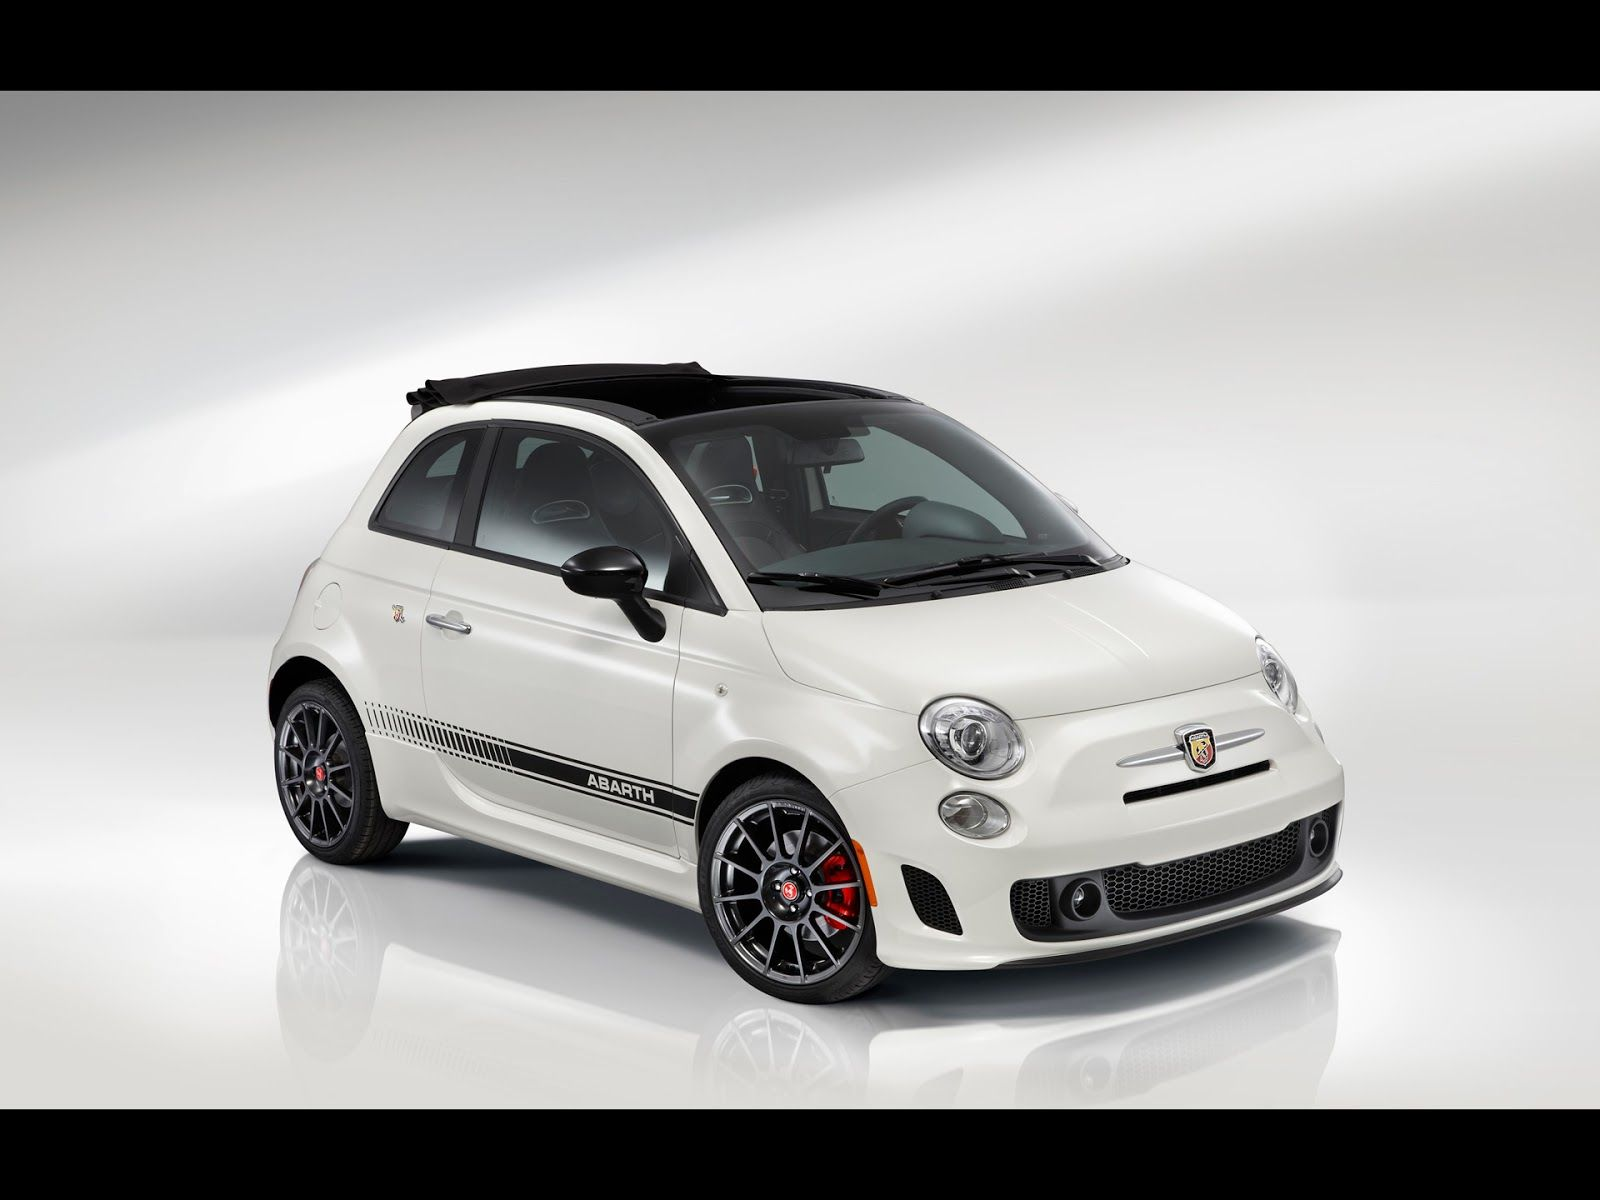 Fiat 500 Abarth Wallpaper in High Resolution New Car